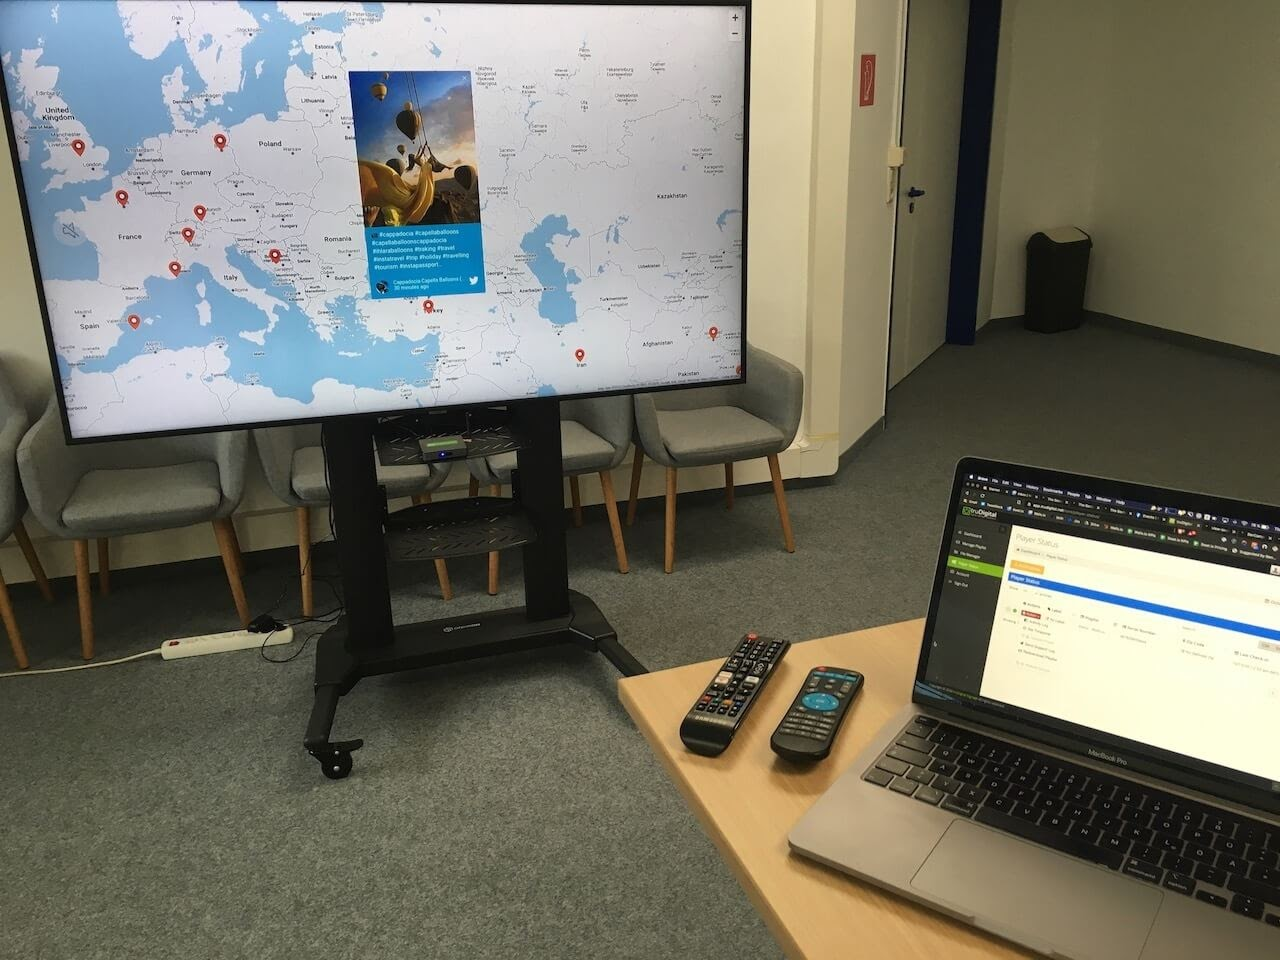 A picture of a screen showing a social map.